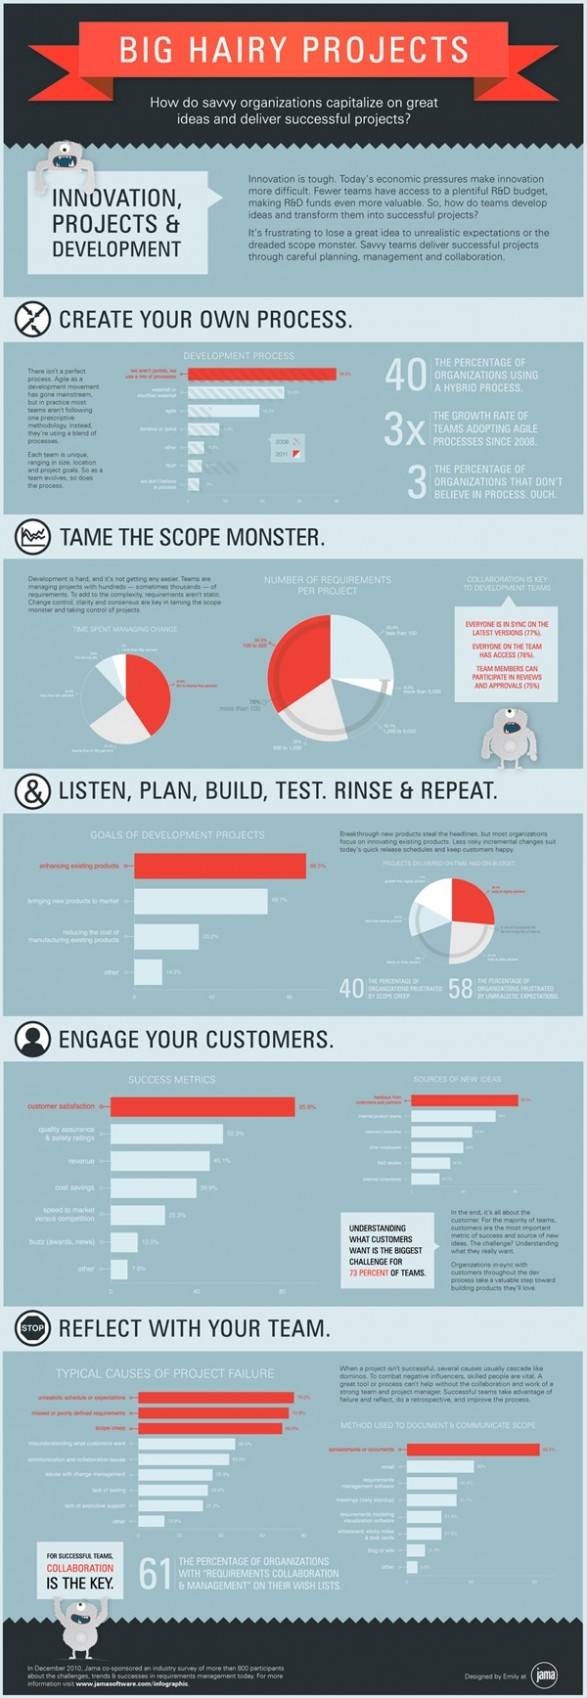 45 best Quality Management Tools images on Pinterest | Business ...